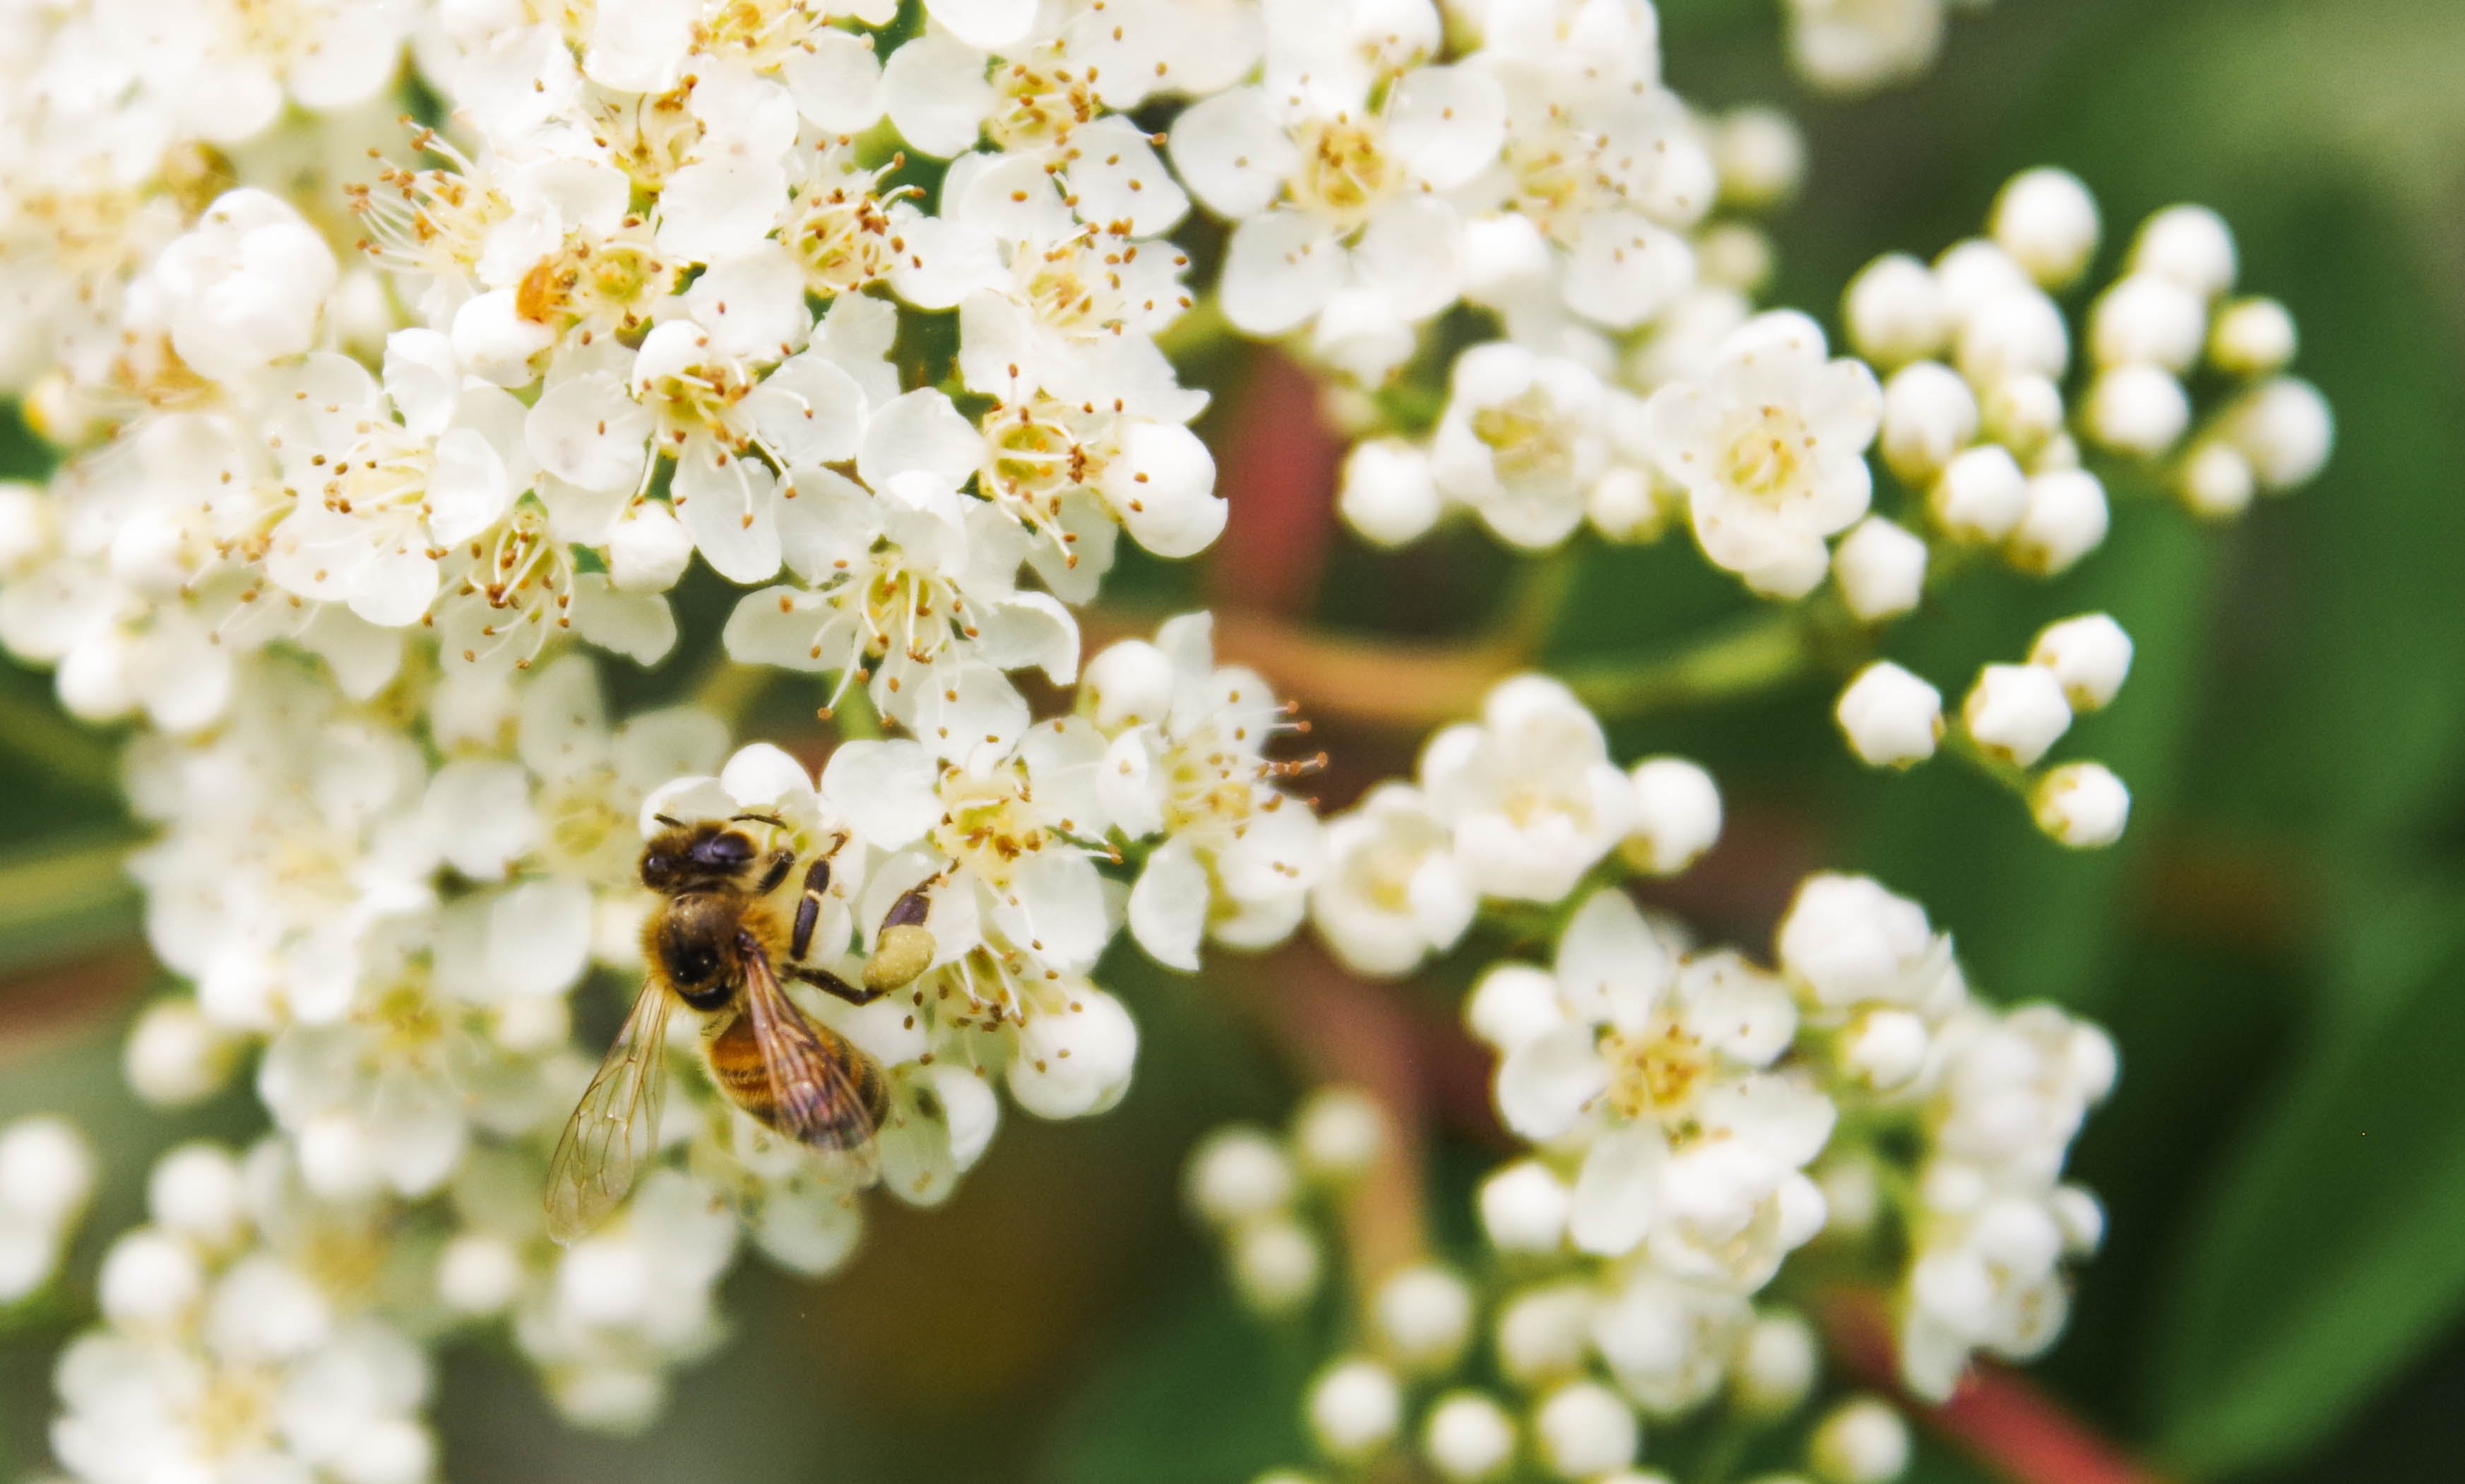 Tilt Shift Lens Photography of Bee on White Flower